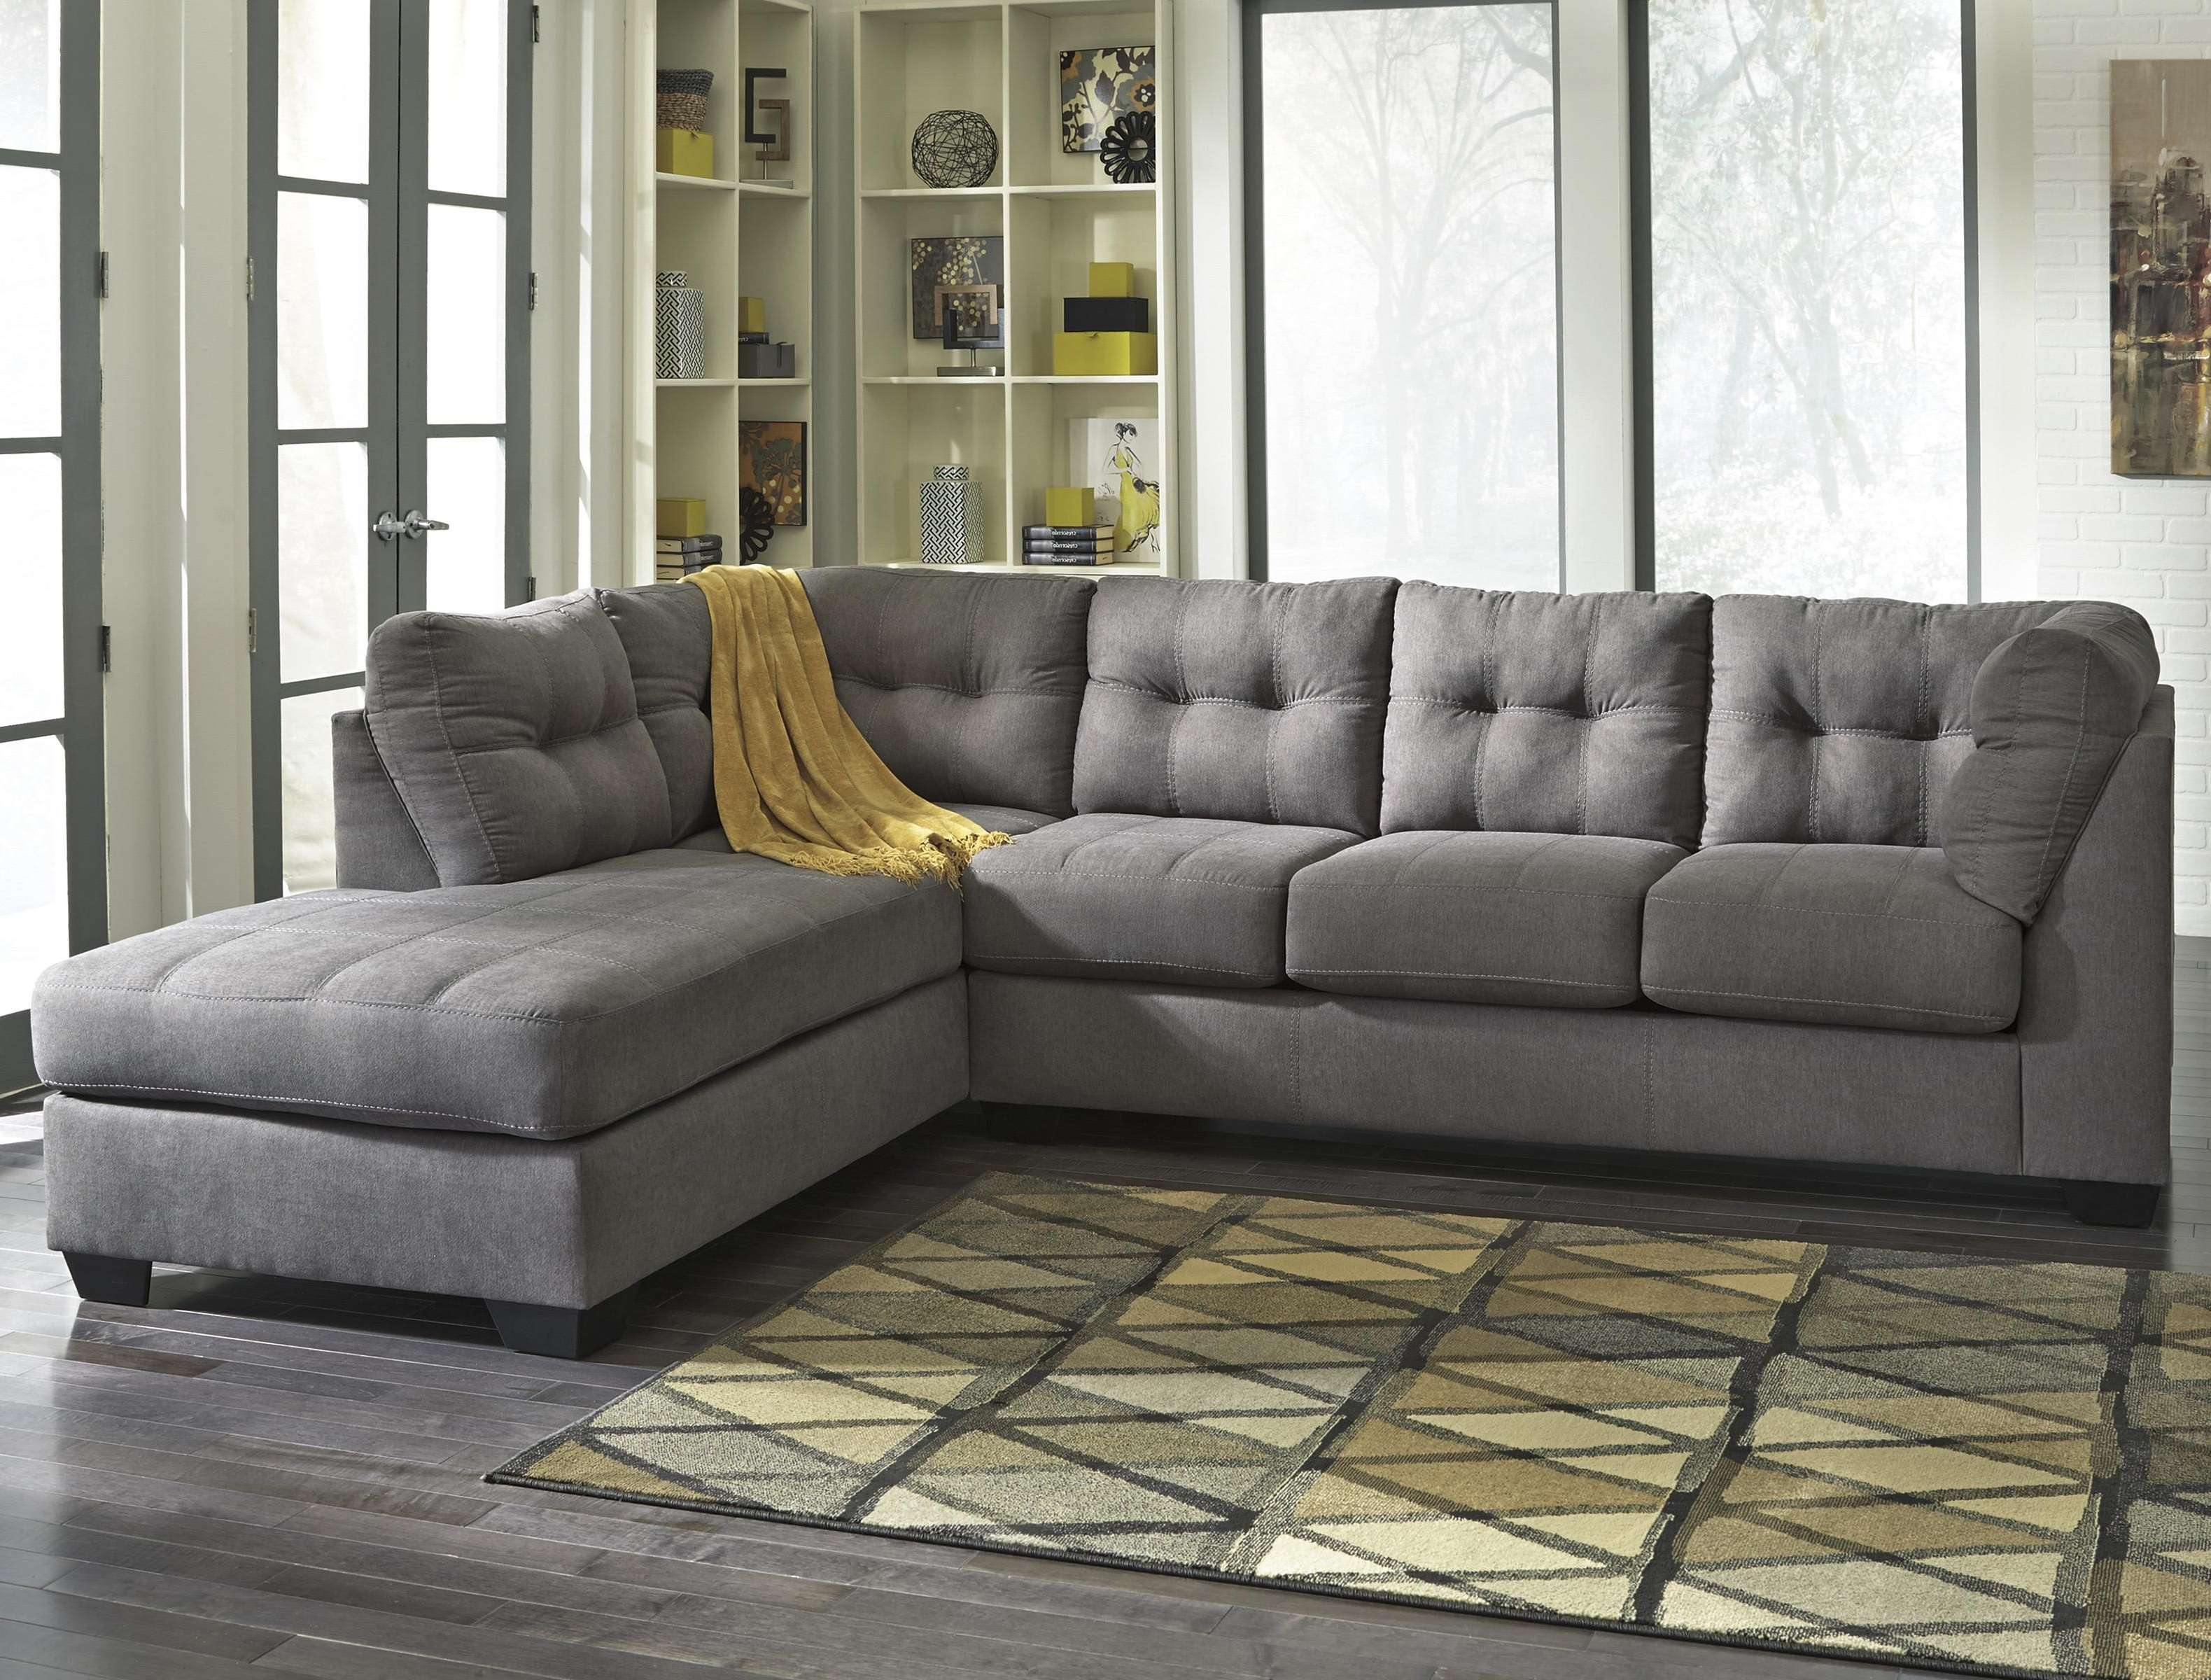 Recent Kingston Ontario Sectional Sofas Regarding Jb King Mendel 2 Piece Sectional With Right Chaise (View 6 of 20)